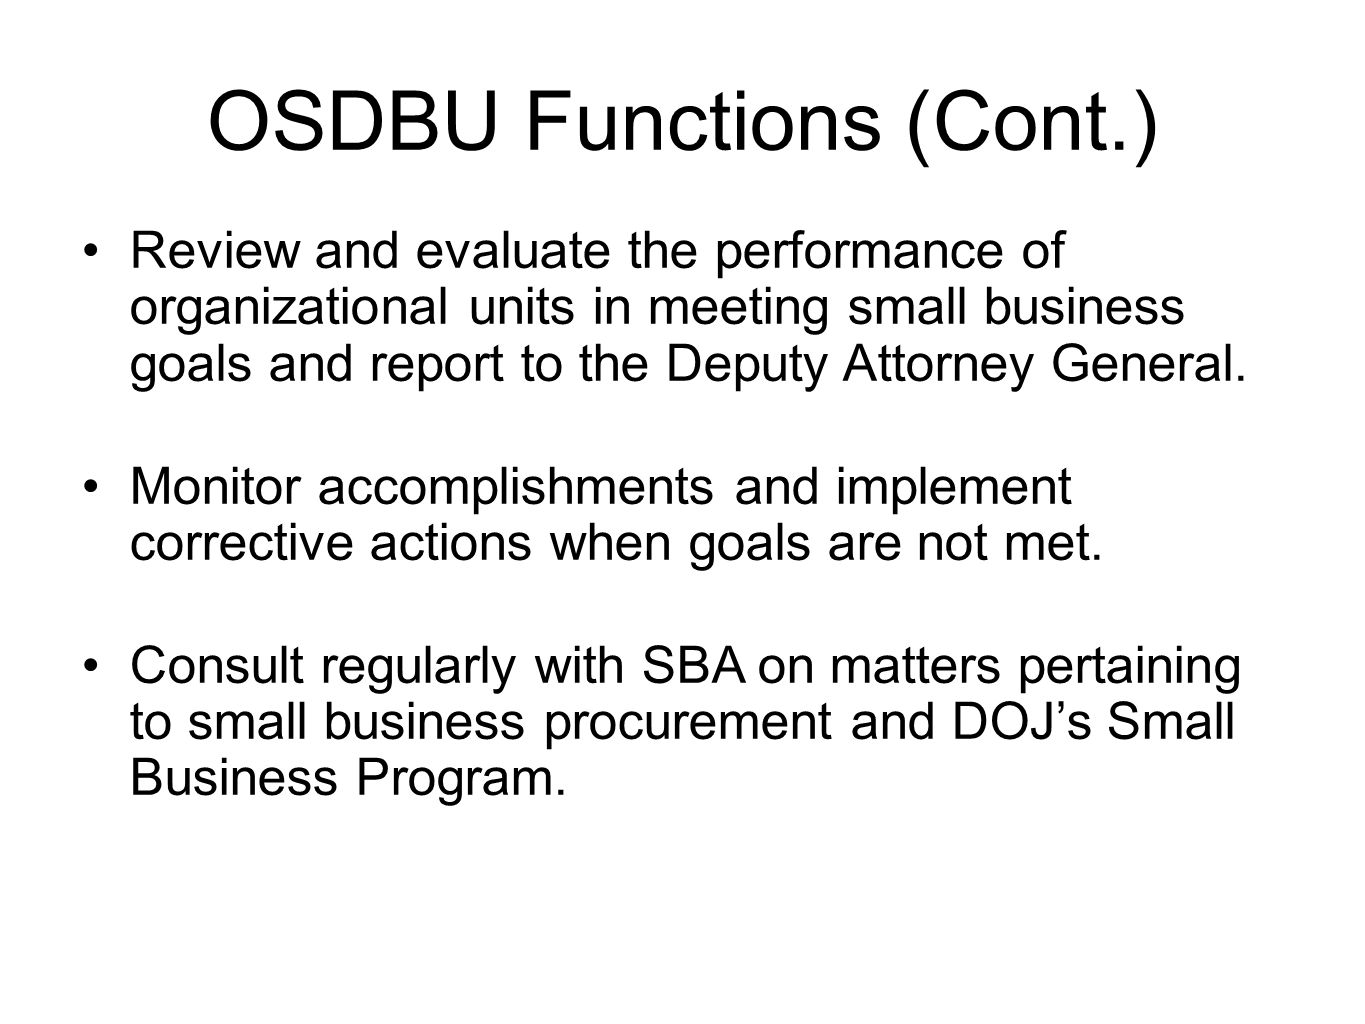 OSDBU Functions (Cont.) Review and evaluate the performance of organizational units in meeting small business goals and report to the Deputy Attorney General.